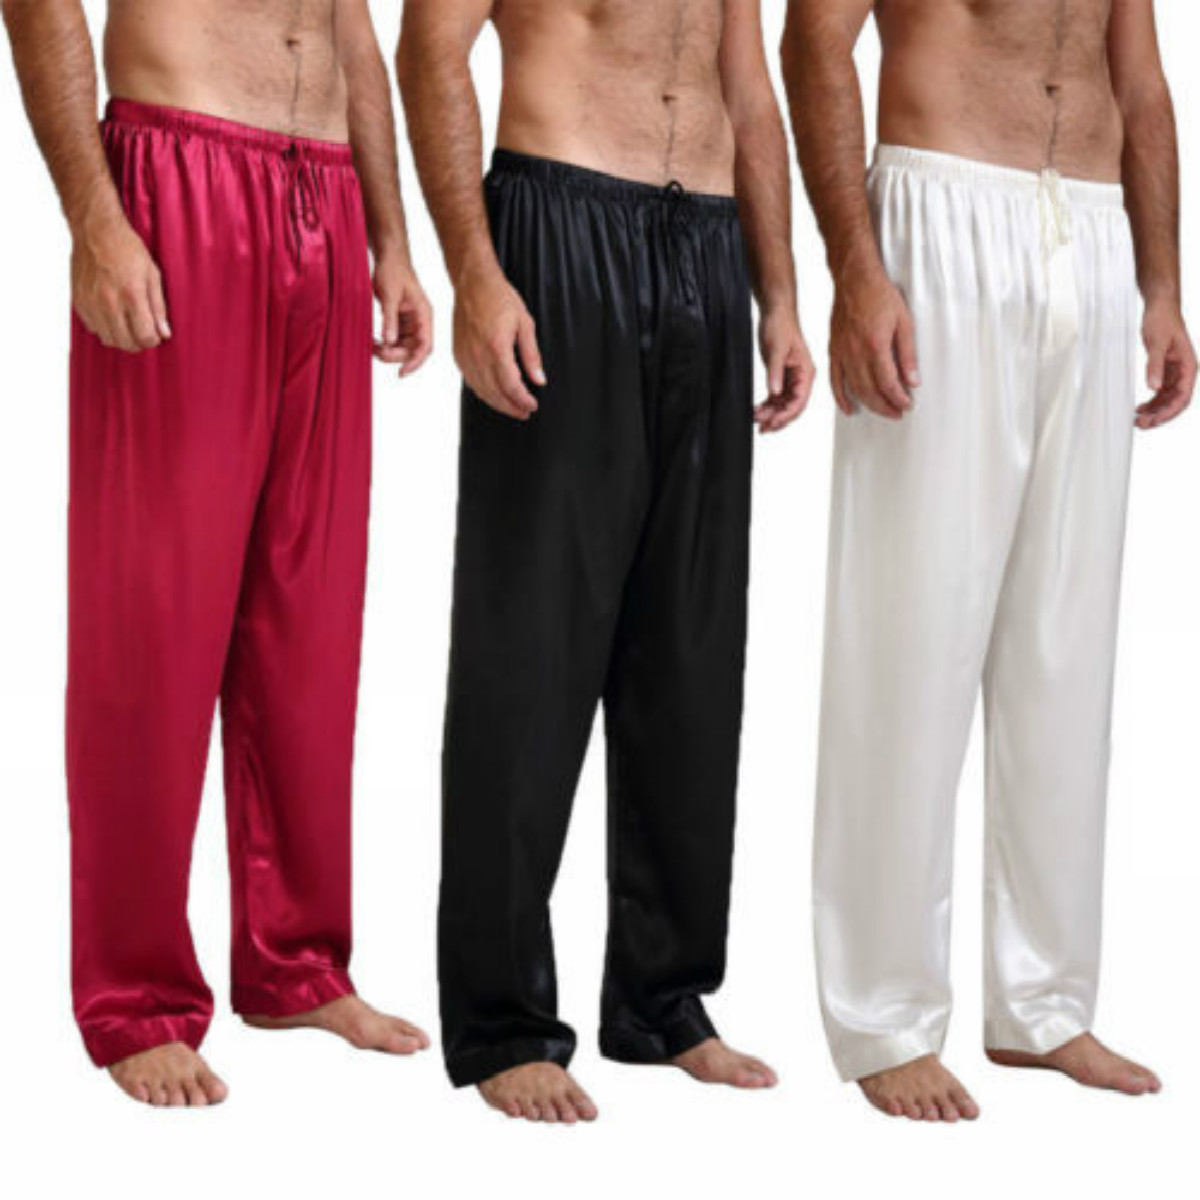 Sleep Buttoms Men Silk Satin Solid Casual Loung Pants Sleep Bottoms Sleepwear Pijama Hombre